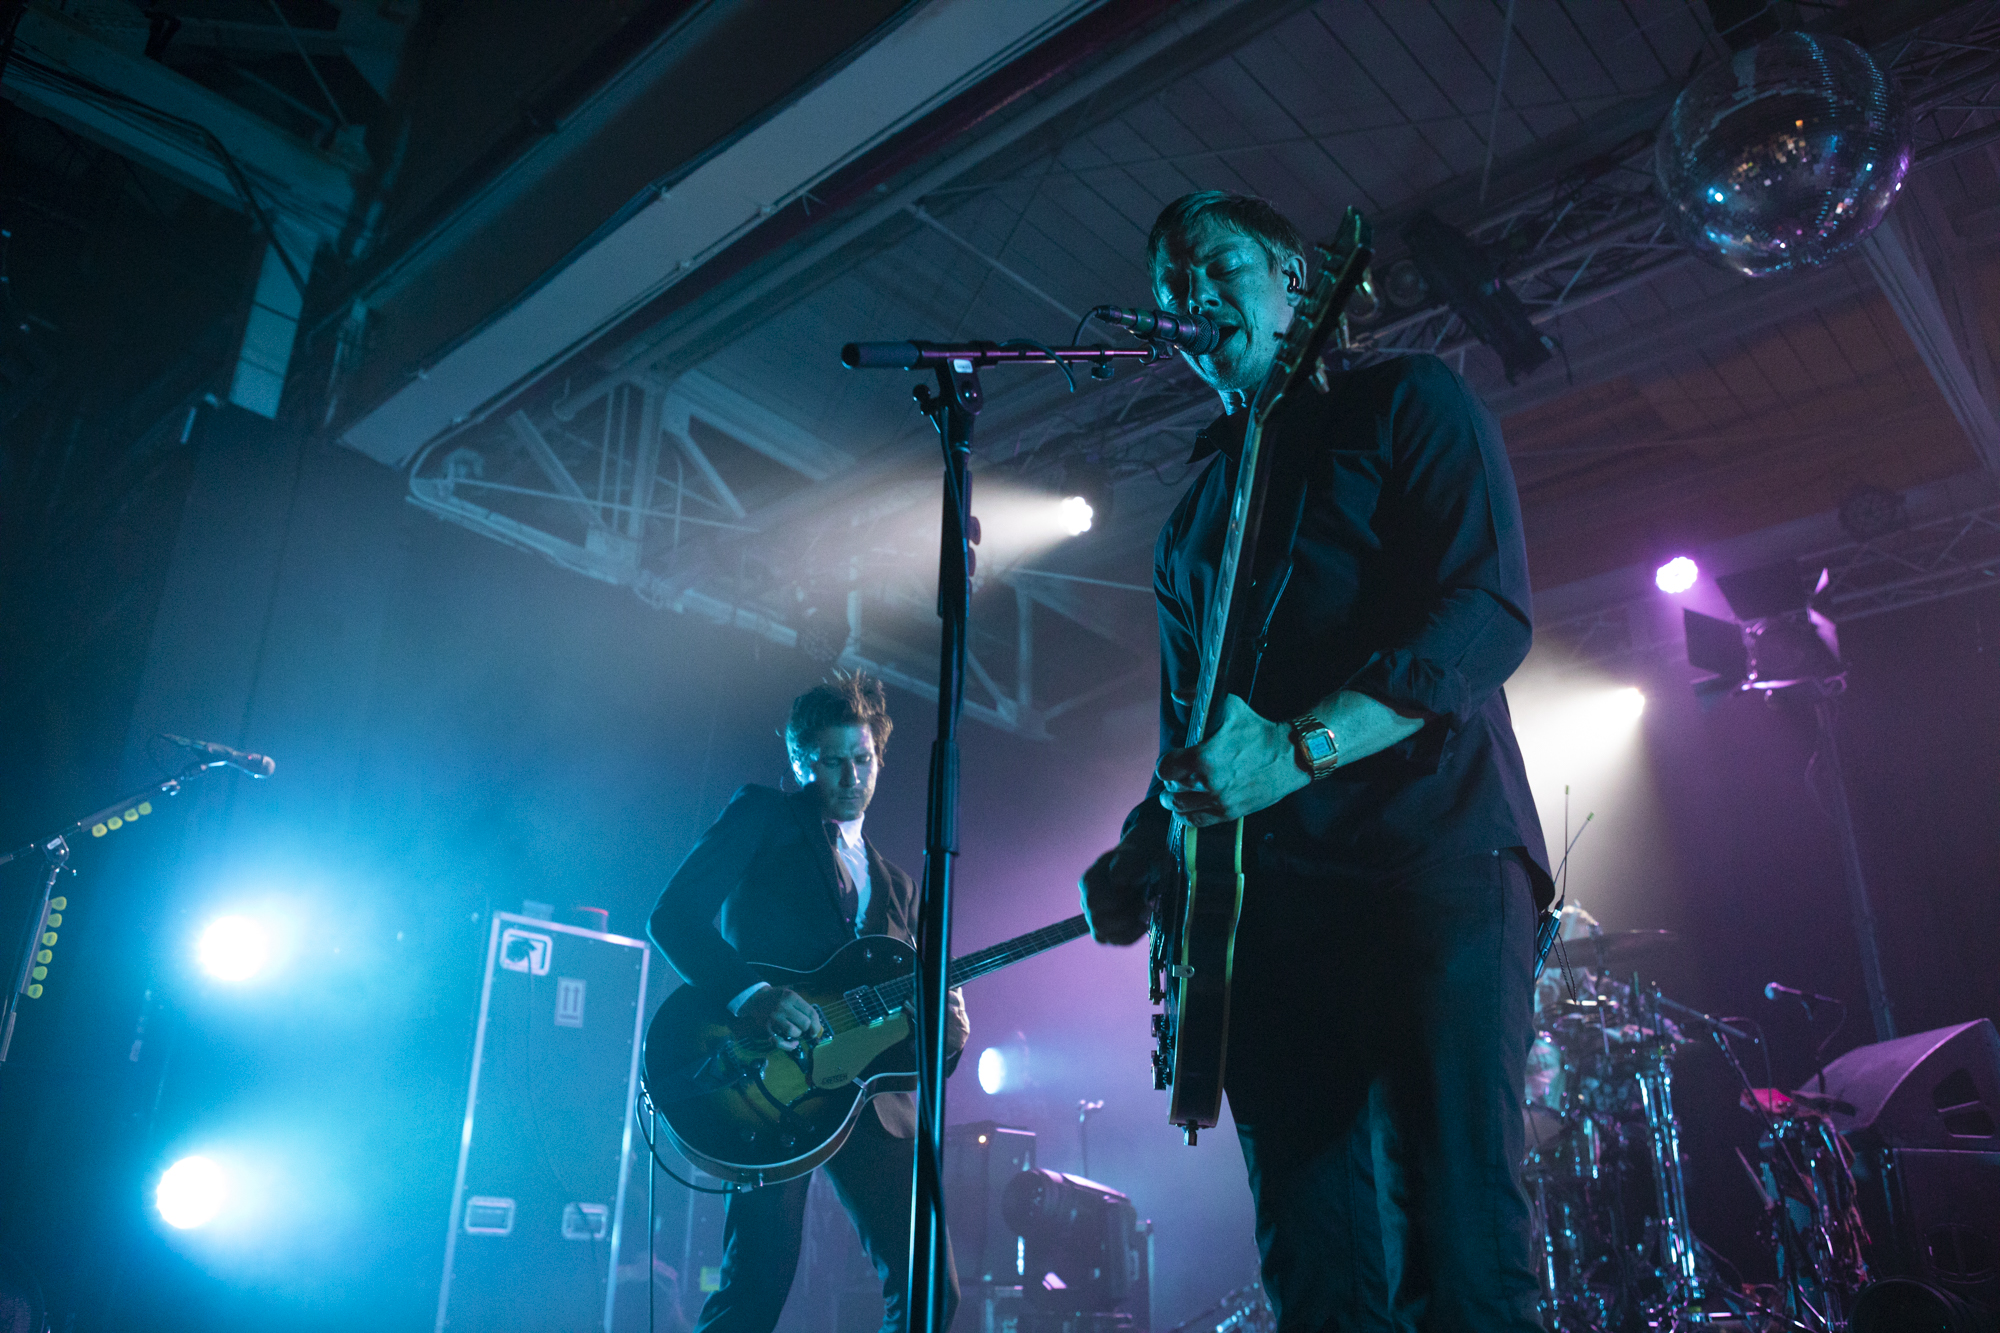 Interpol celebrated the release of its new album 'Marauder' at House of Vans' final show before closing down after a 8-year run in Greenpoint, Brooklyn, New York on Aug. 24, 2018. (© Michael Katzif - Do not use or republish without prior consent.)